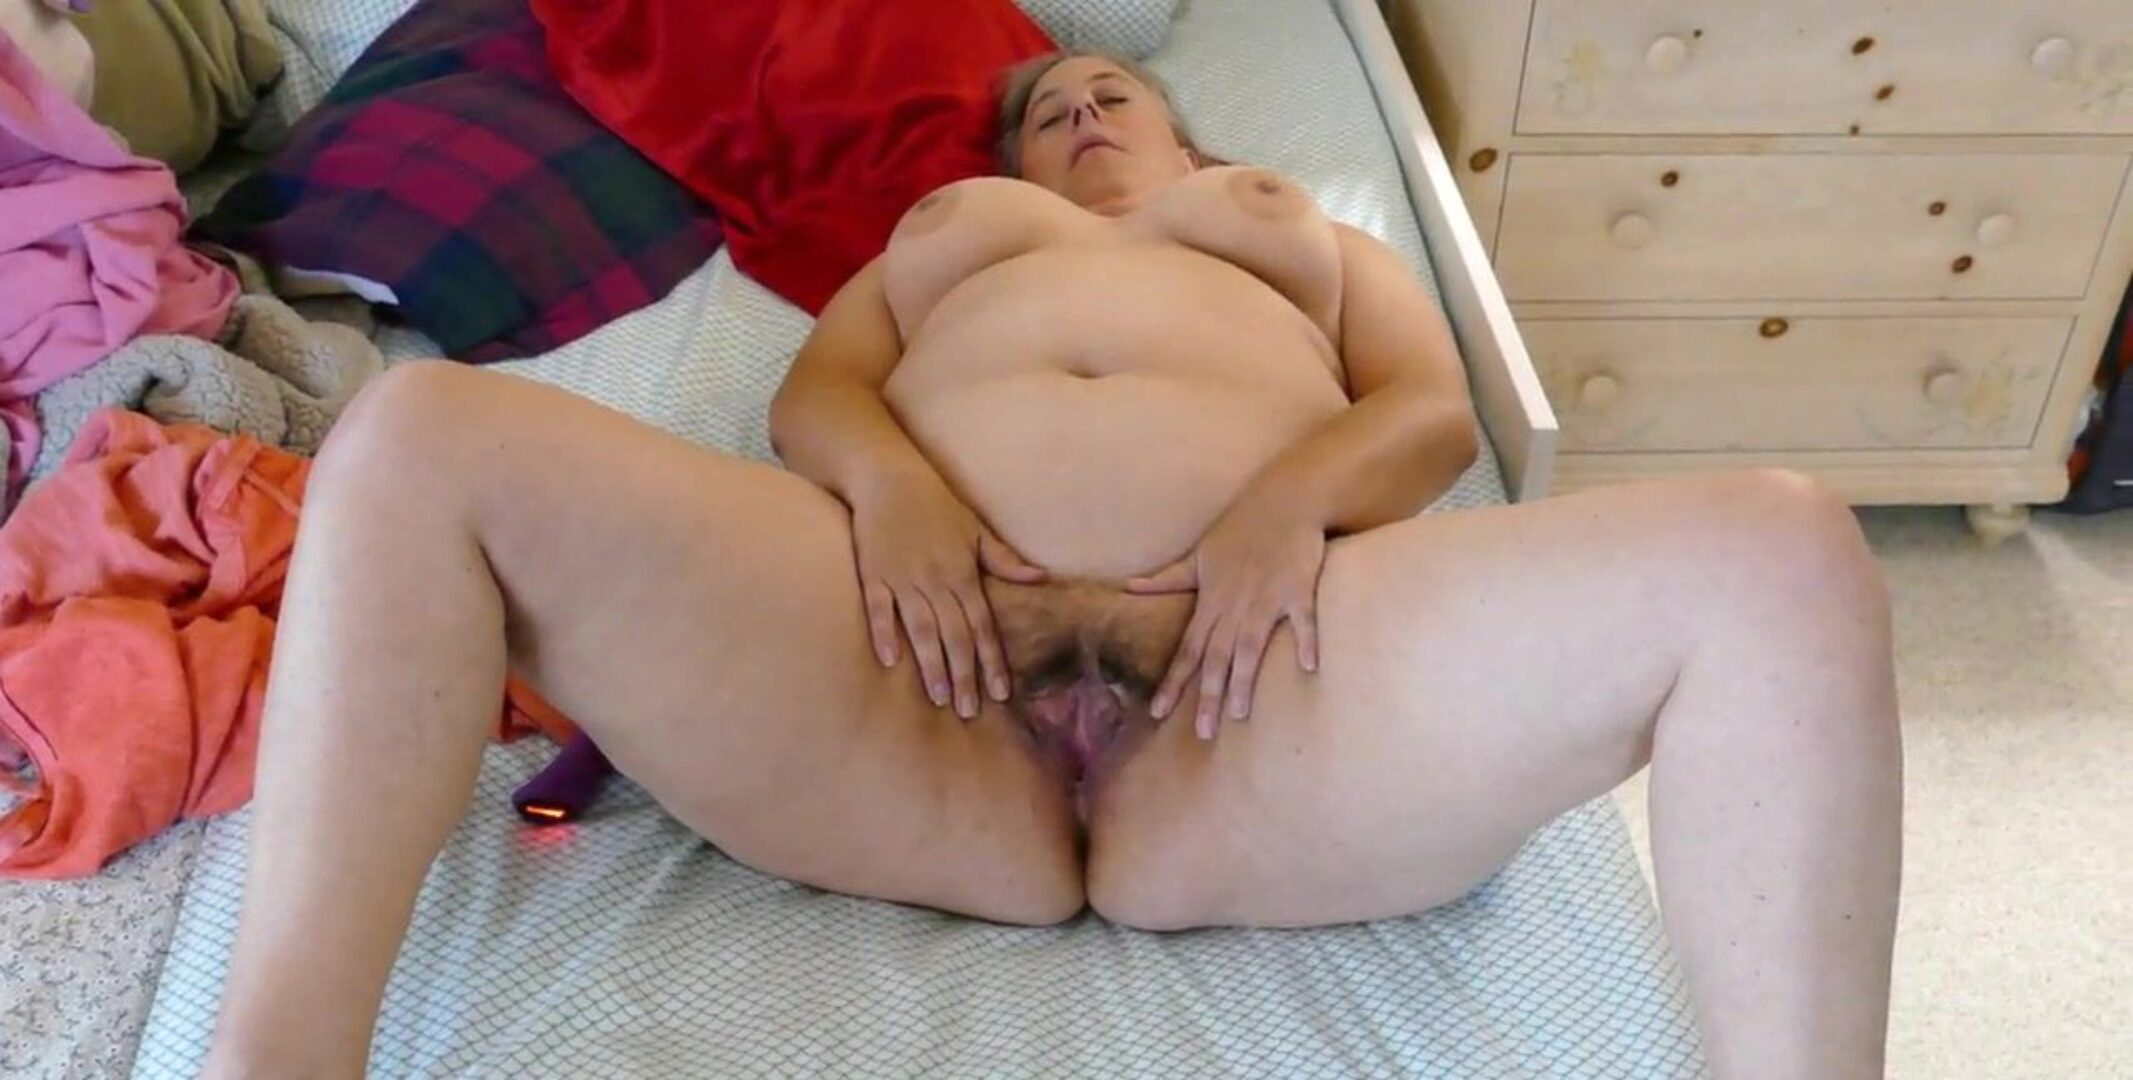 Watching My Chubby BBW Stepmom Masturbate with Her Big Watch Watching My Chubby big beautiful woman Stepmom Masturbate with Her Big Dildo movie scene on xHamster - the ultimate database of free-for-all MILF & Mom HD porno tube vids